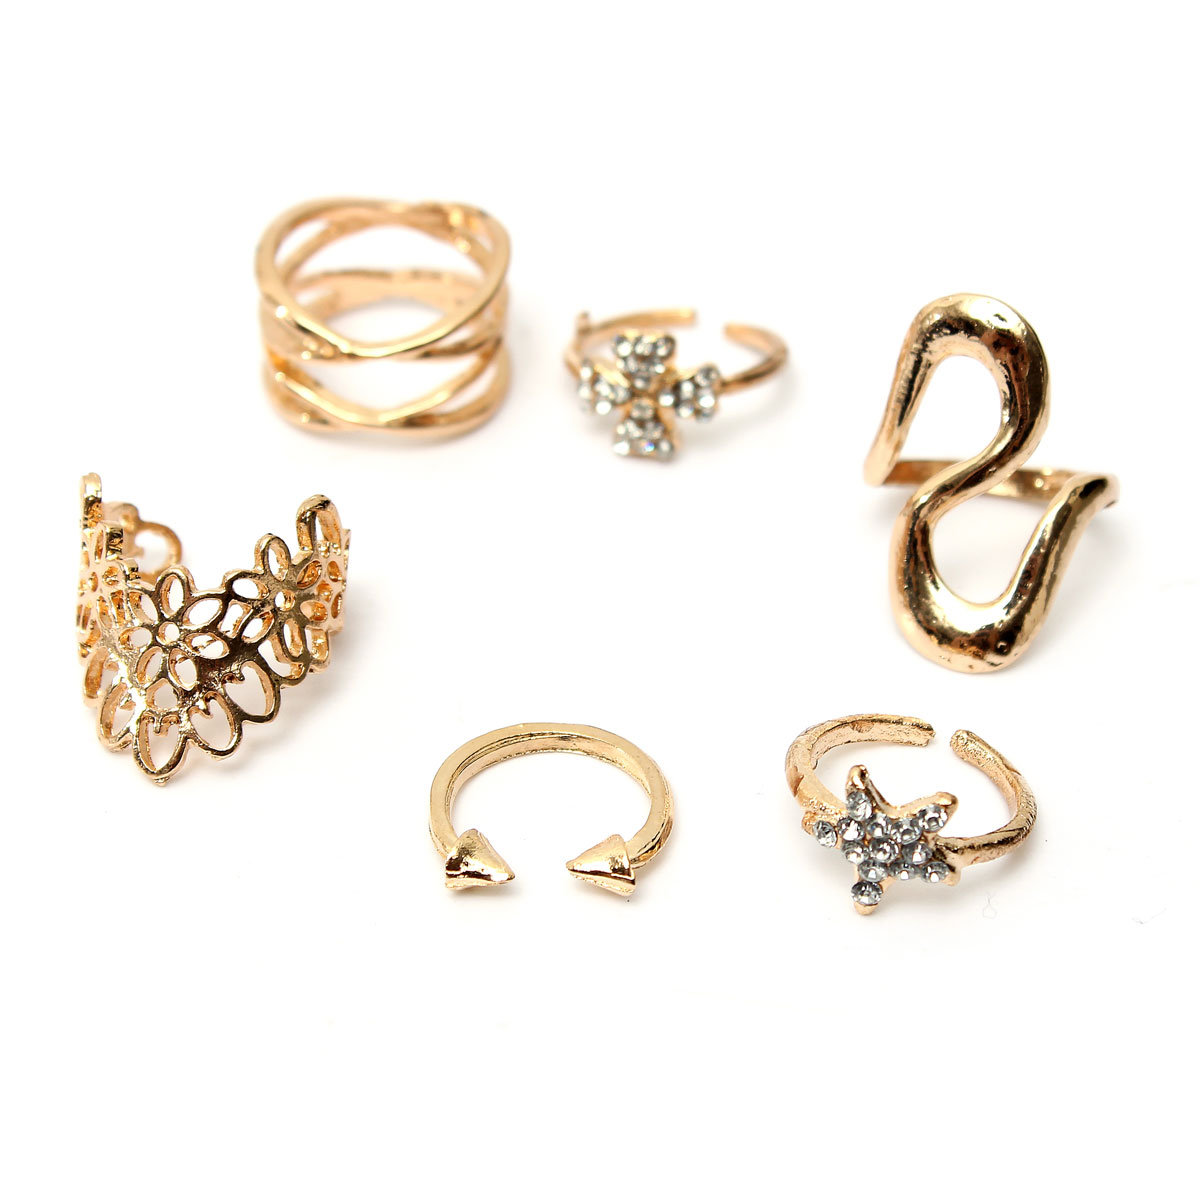 7pcs Gold Crystal Star Clover Above Knuckle Unique Rings Set